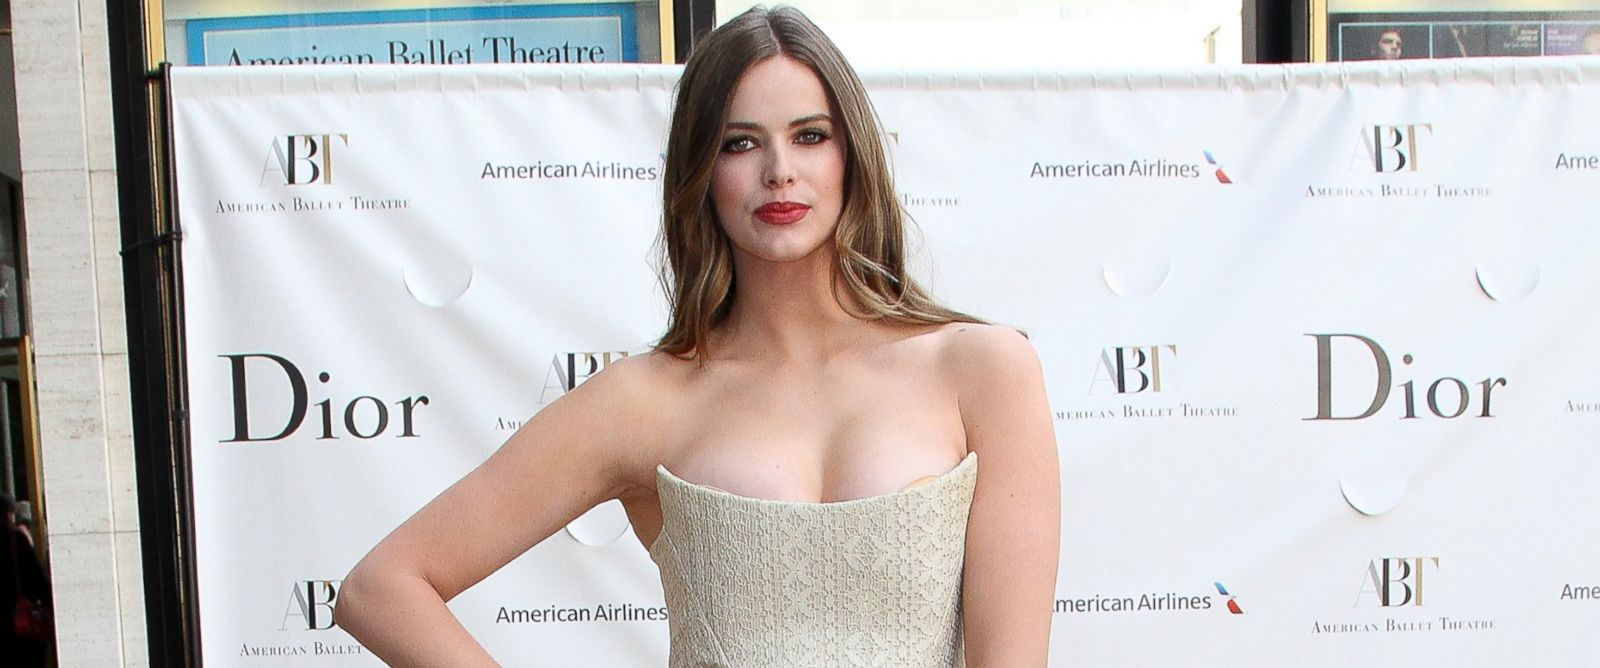 PHOTO: Robyn Lawley attends the 2013 American Ballet Theatre Opening Night Spring Gala at Lincoln Center in this May 13, 2013, file photo in New York City.